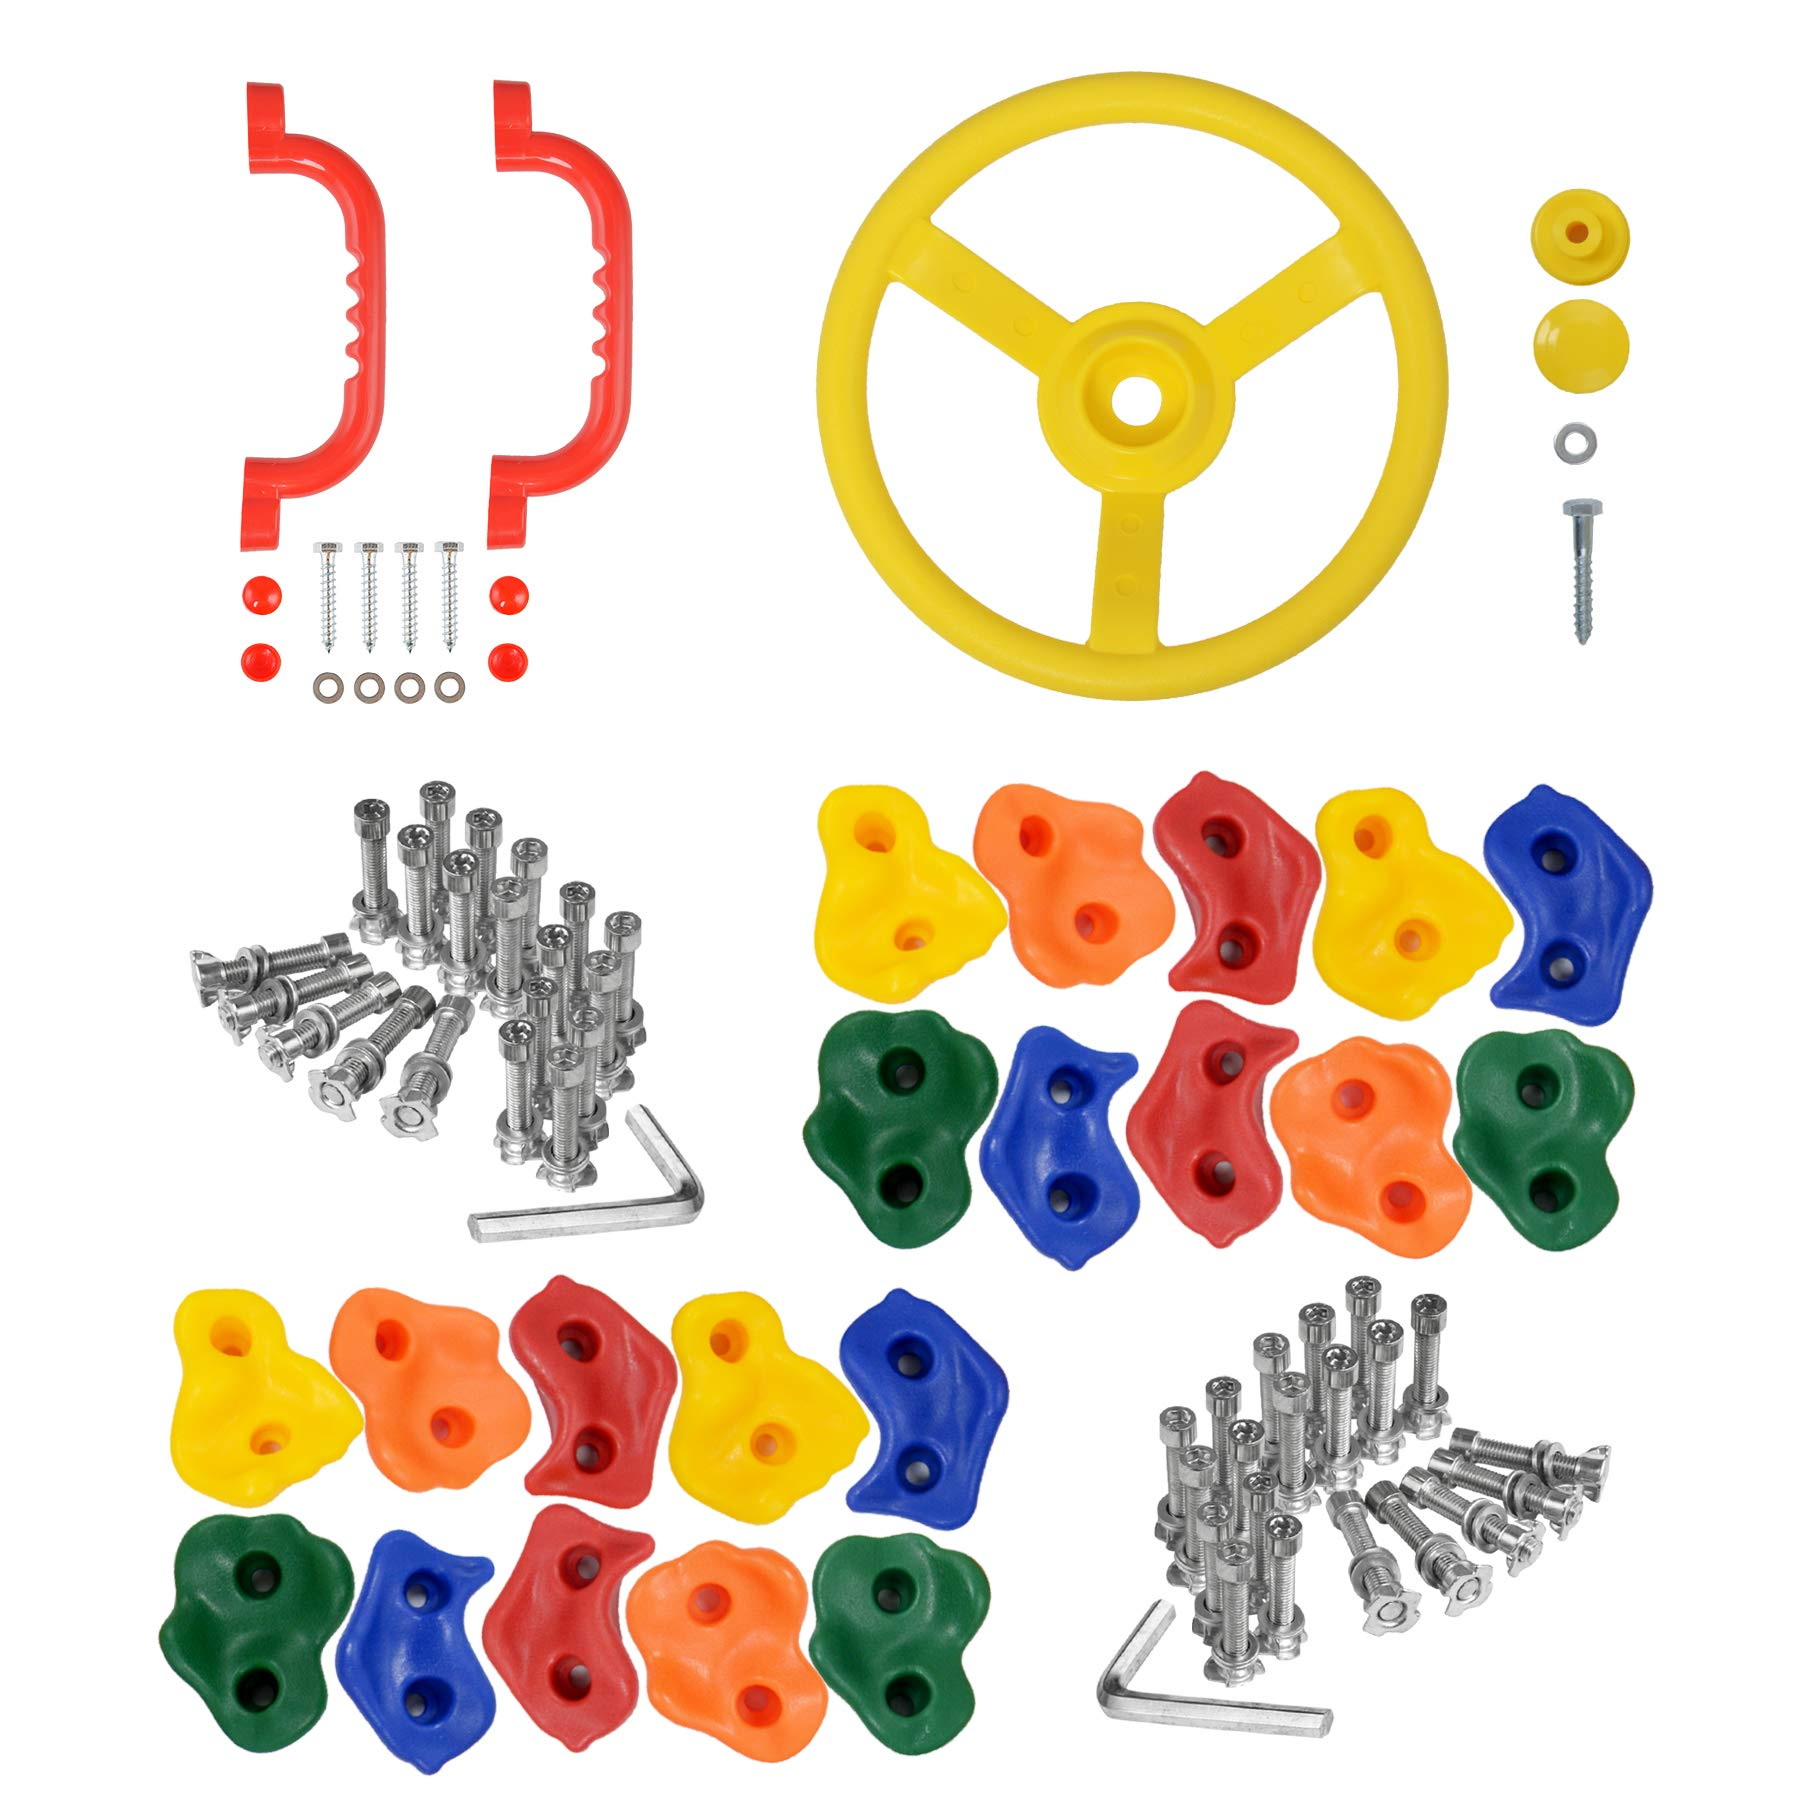 Jozeit 20 pcs DIY Rock Climbing Holds Stone with Steering Wheel Set - Incl. Mounting Screws and Hooks Hardware Included - for Kids Indoor and Outdoor Play Set Use by Jozeit